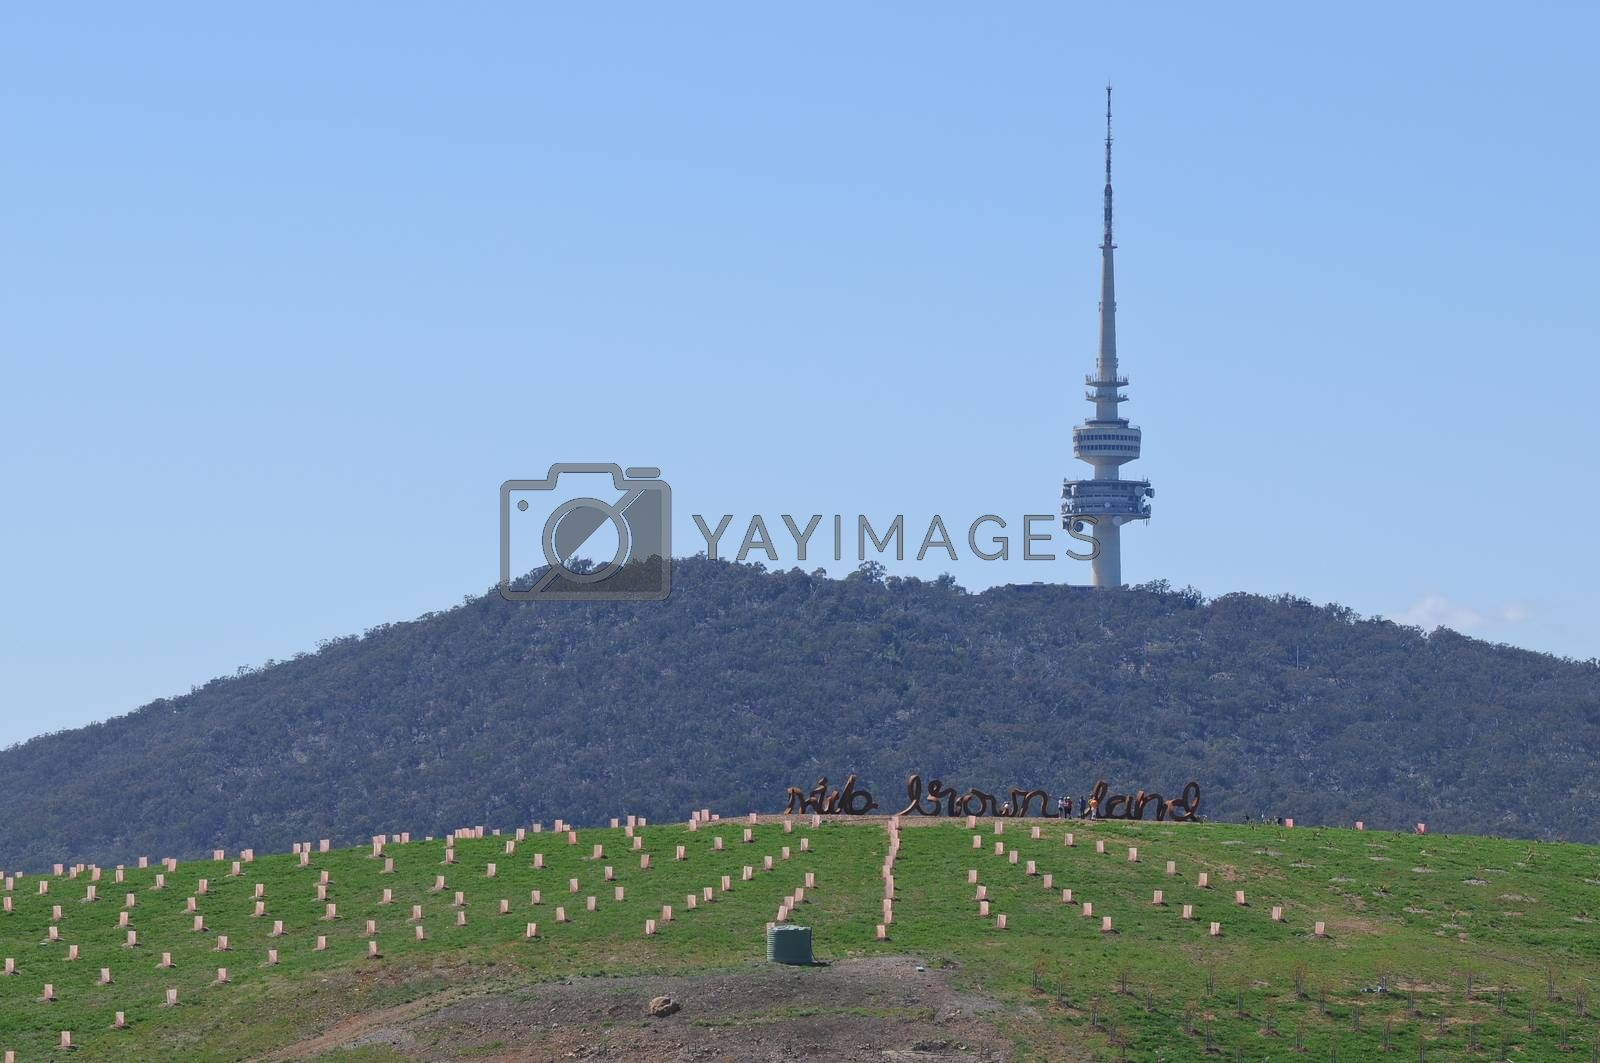 high rise communication tower up in the greeny hill in Canberra